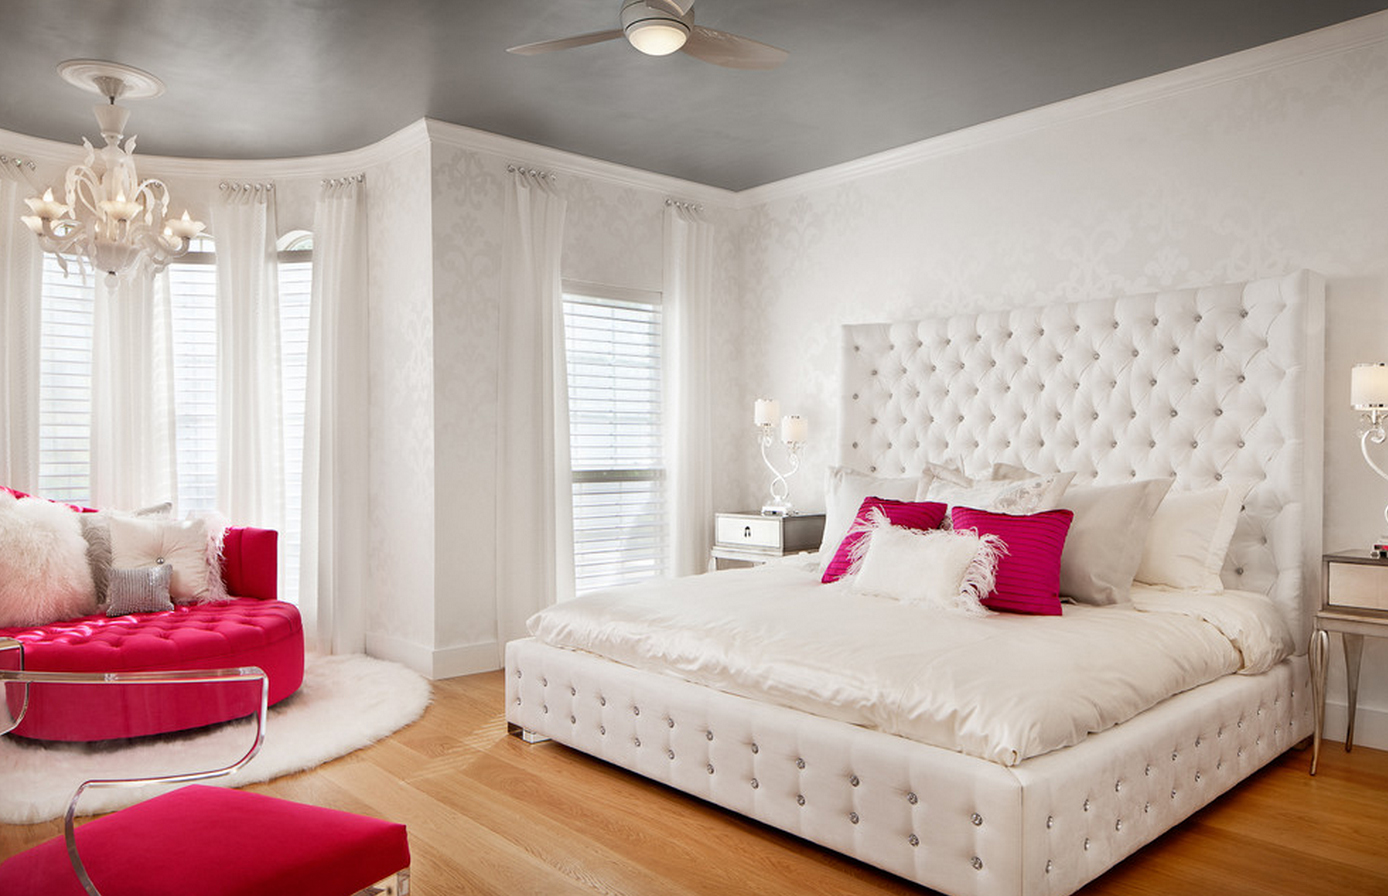 Rich Bedroom Style For Tween